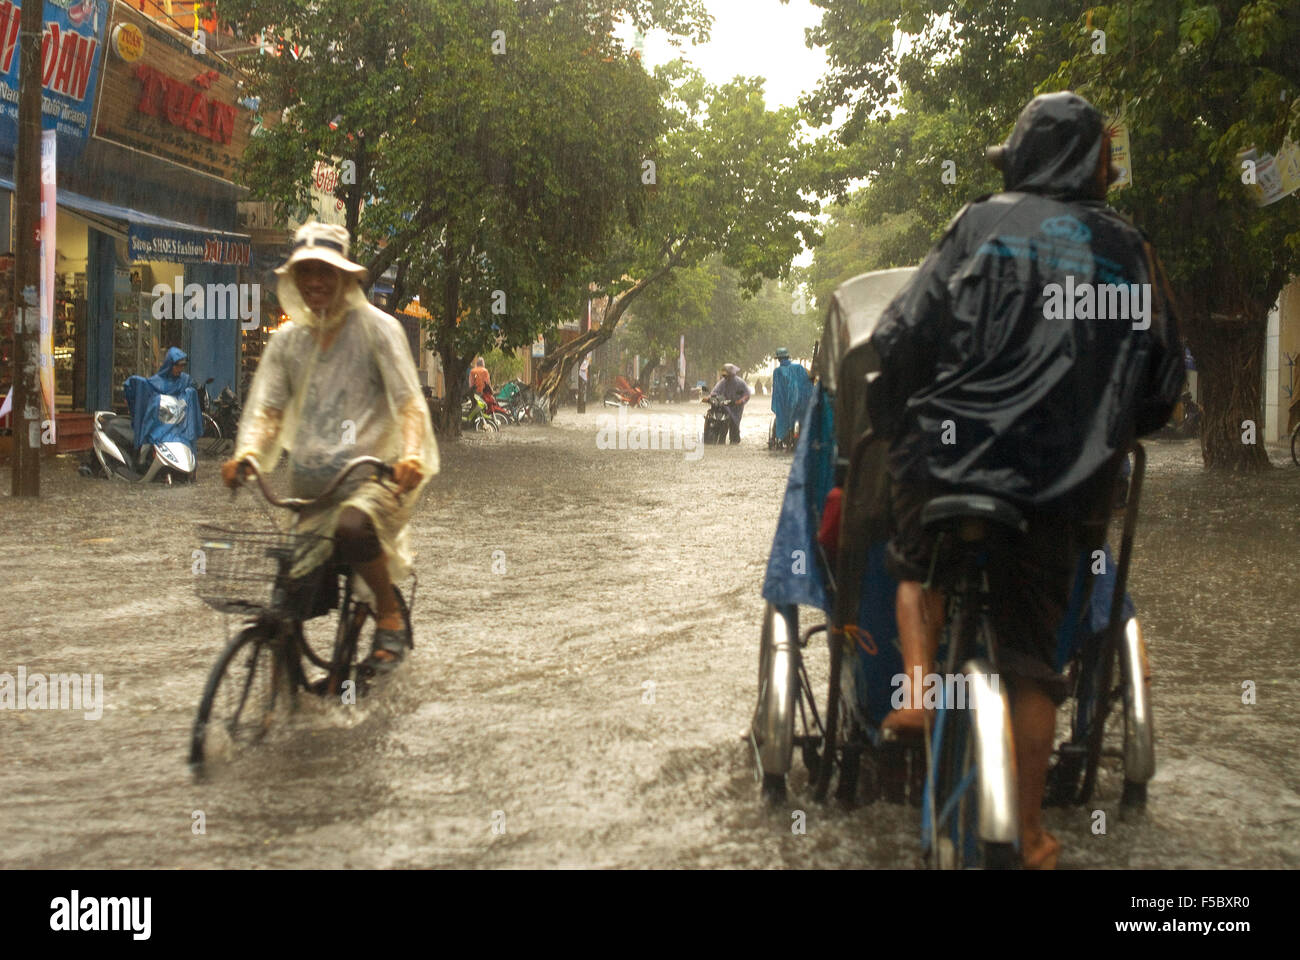 Monsoon rains in the city of Hue. People in tuc-tuc rides bicycle along flooded streets in Hue. Vietnam. - Stock Image